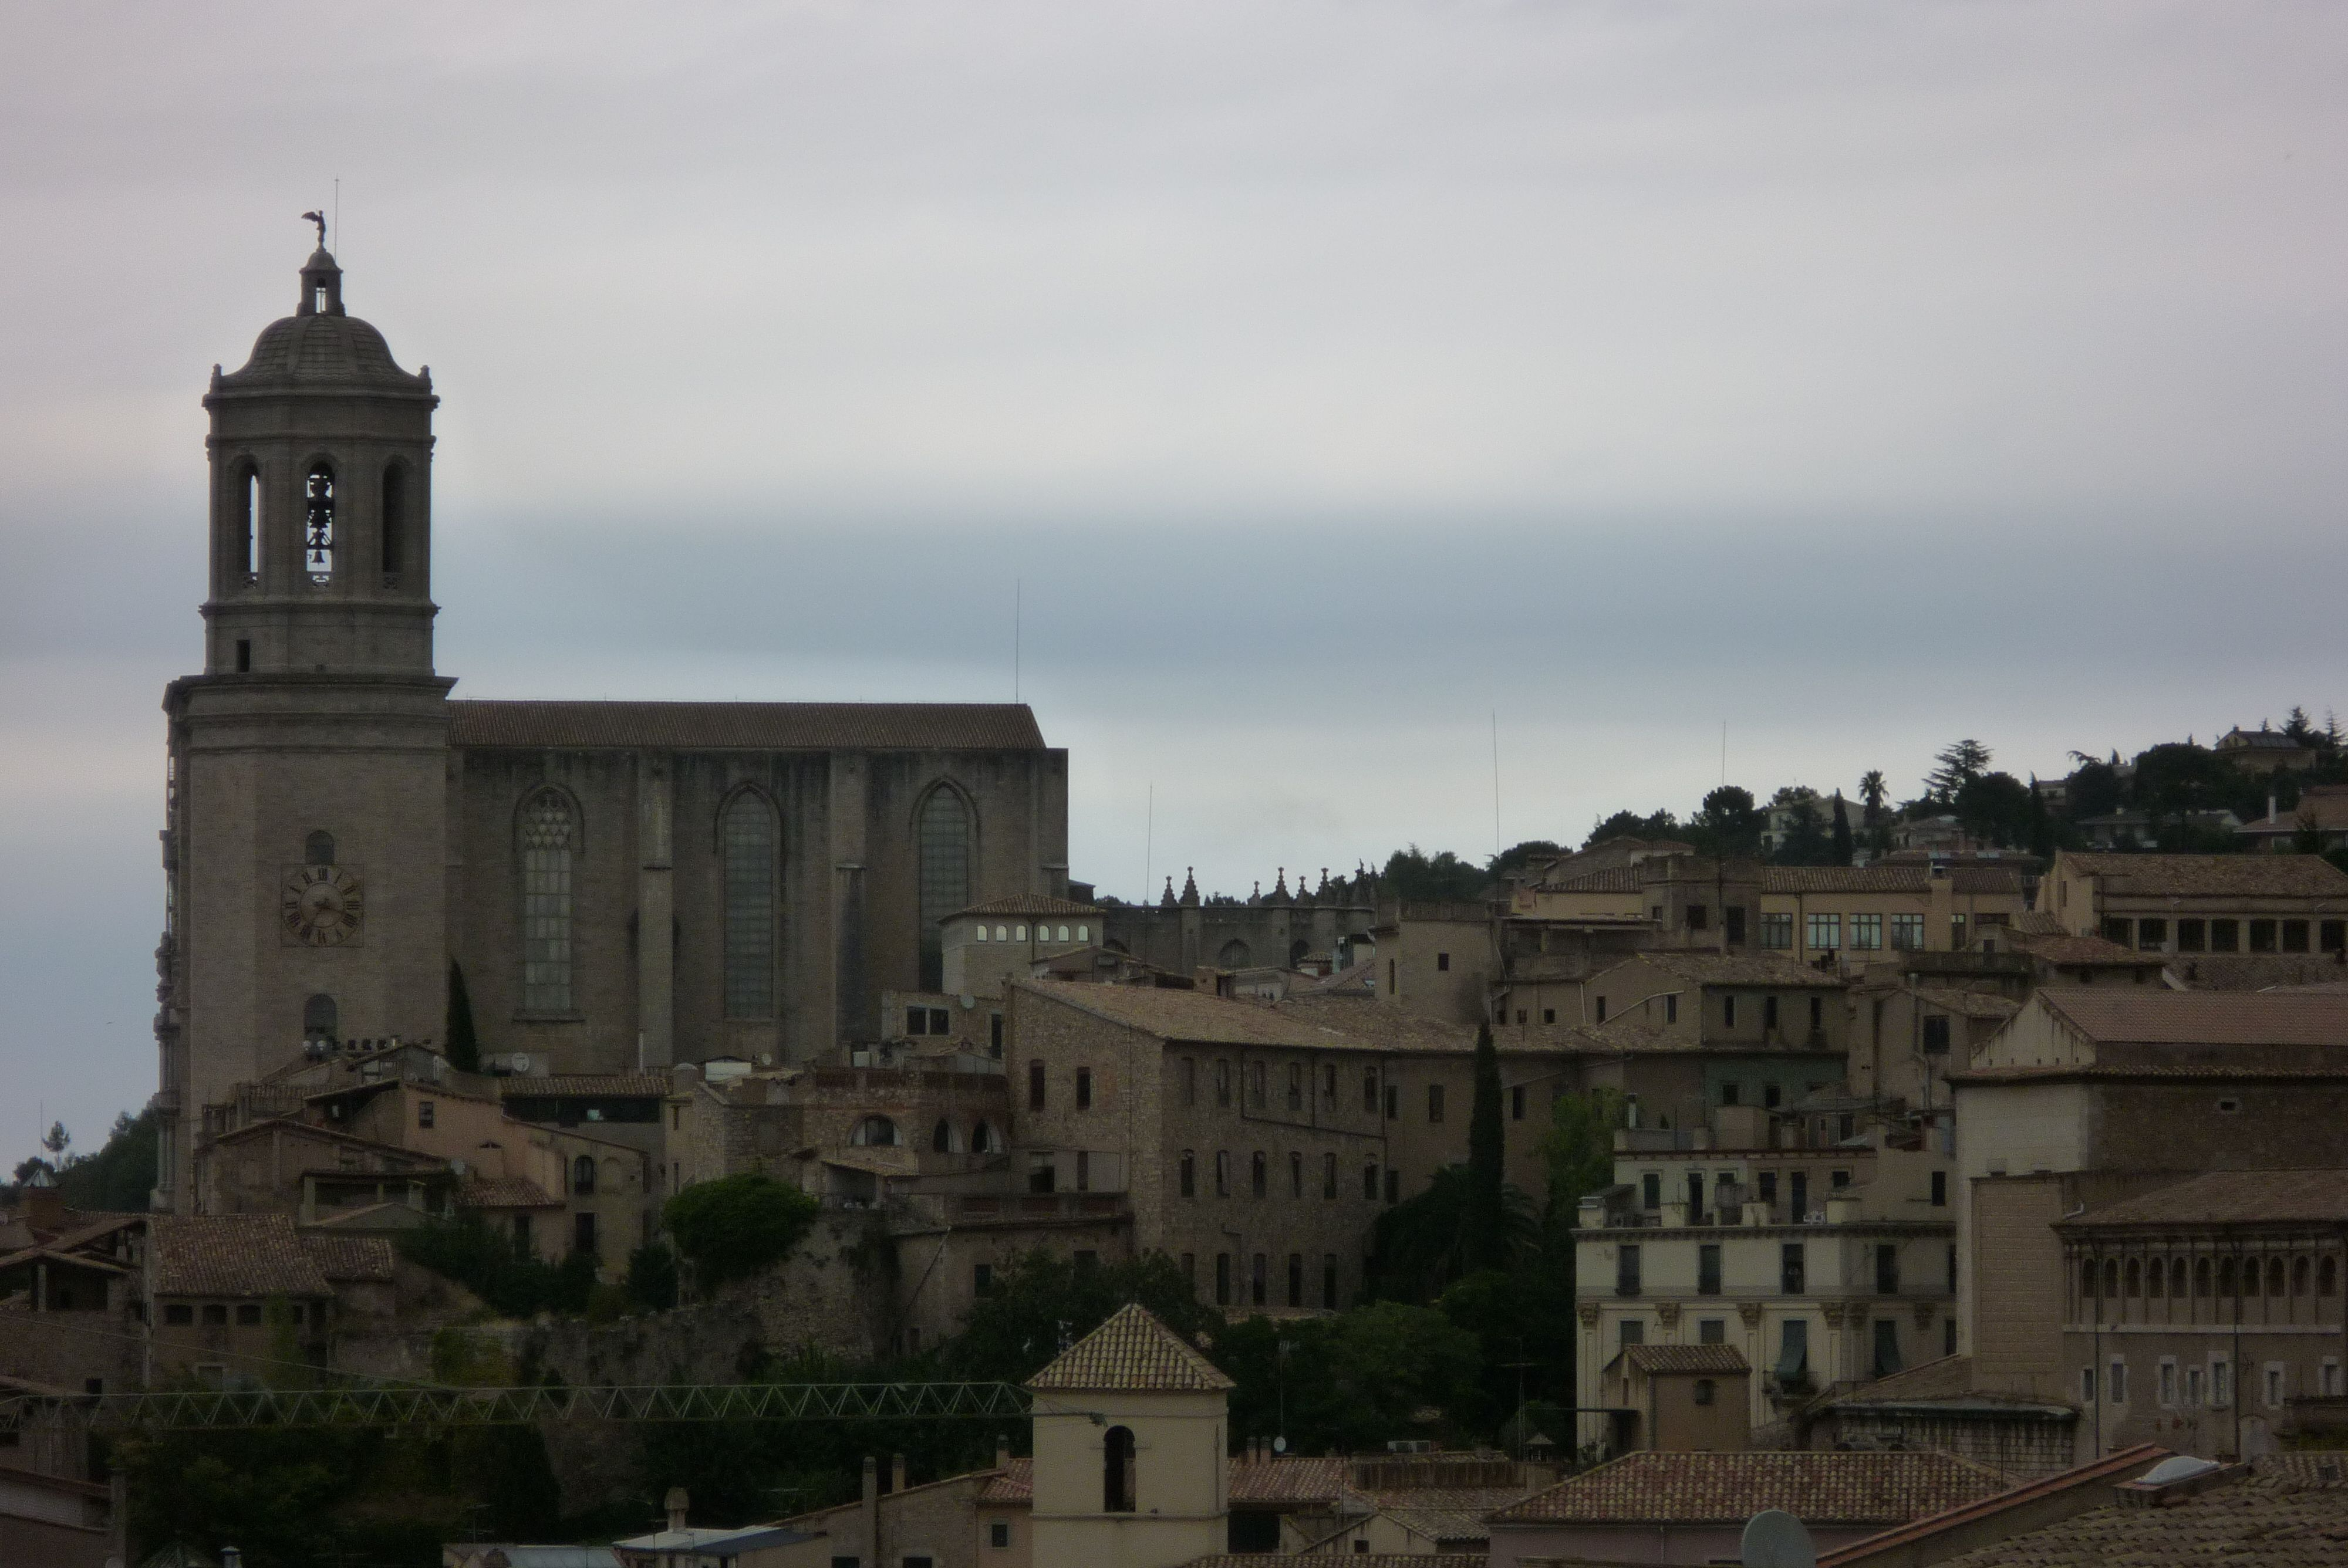 Girona: cathedral photographed from the great medieval wall around the city